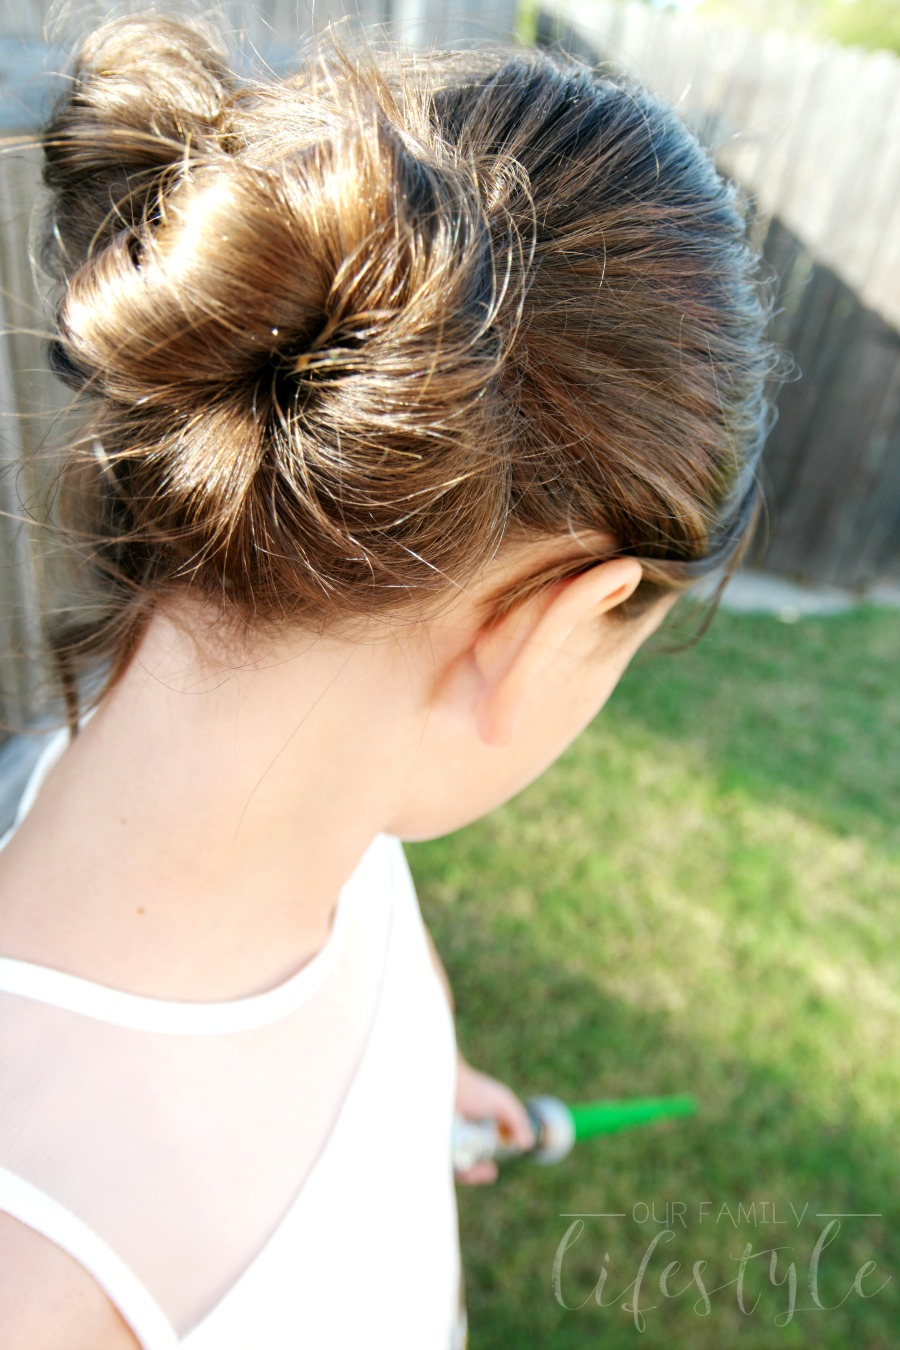 Princess-Leia-hair-buns